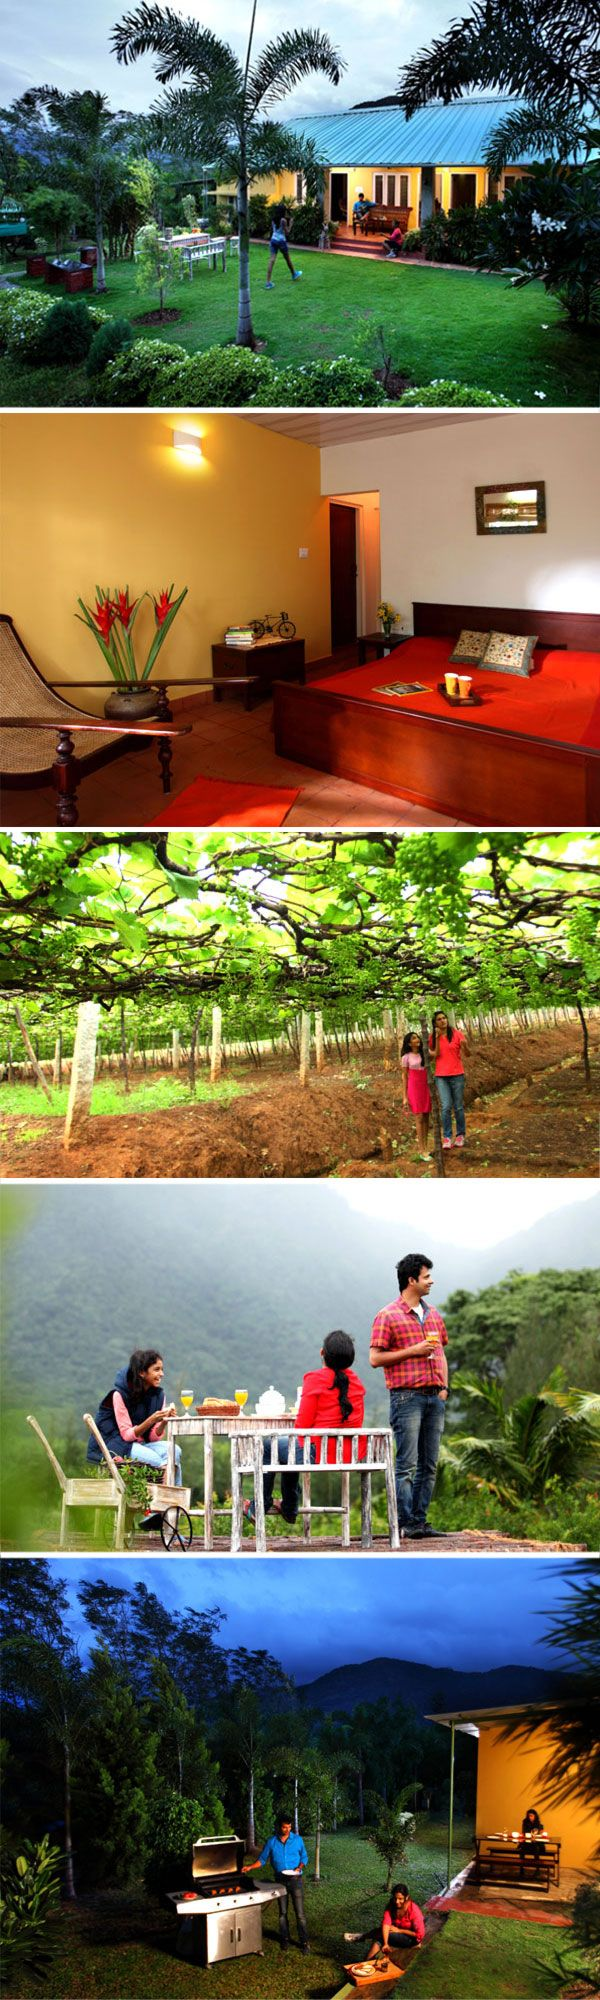 India Travel : Farmstay in Thekkady. It is a beautiful valley with luxurious green fields and Organic Farm near Thekkady, you simply cannot miss the lush paddy, swaying coconut trees, vineyards bursting with green gems and the beautiful vegetables and spice plantation that are around year long